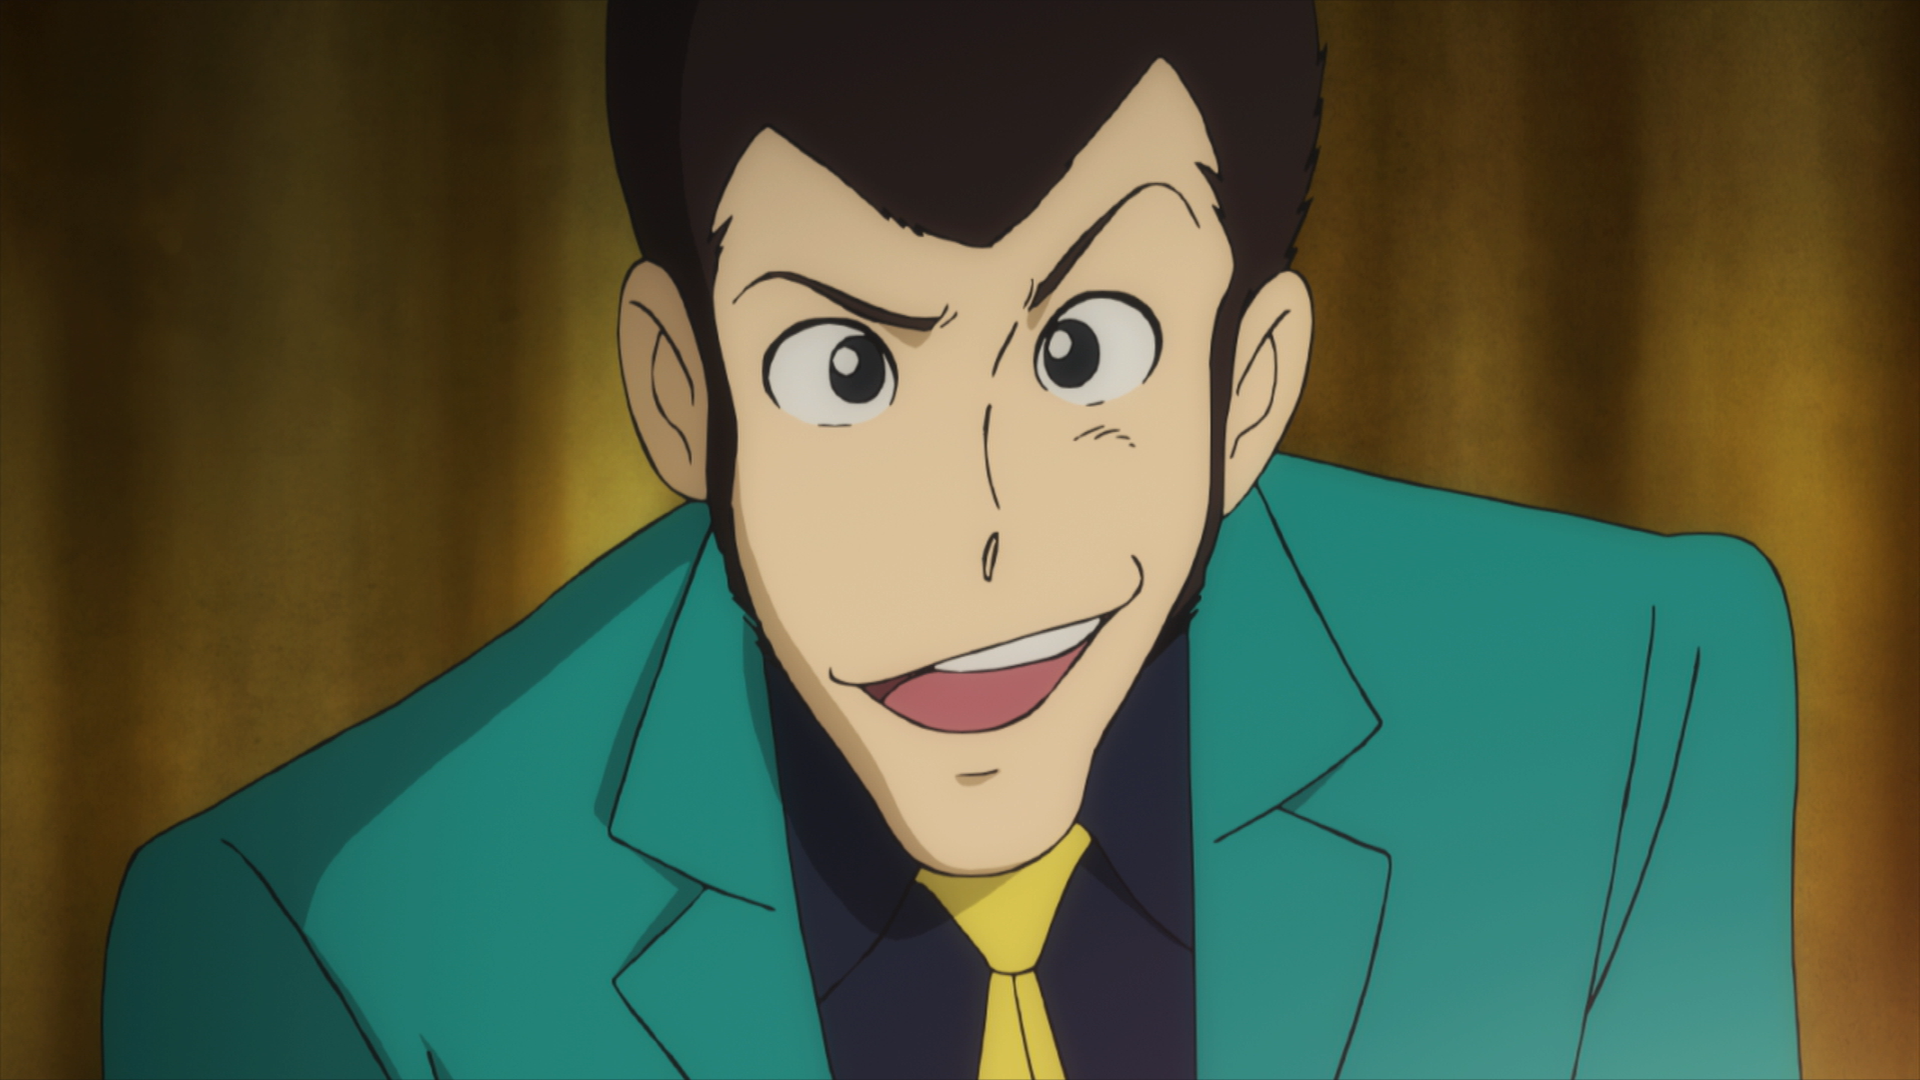 Pin by Sarah on Lupin the 3rd Lupin iii, Anime, Favorite